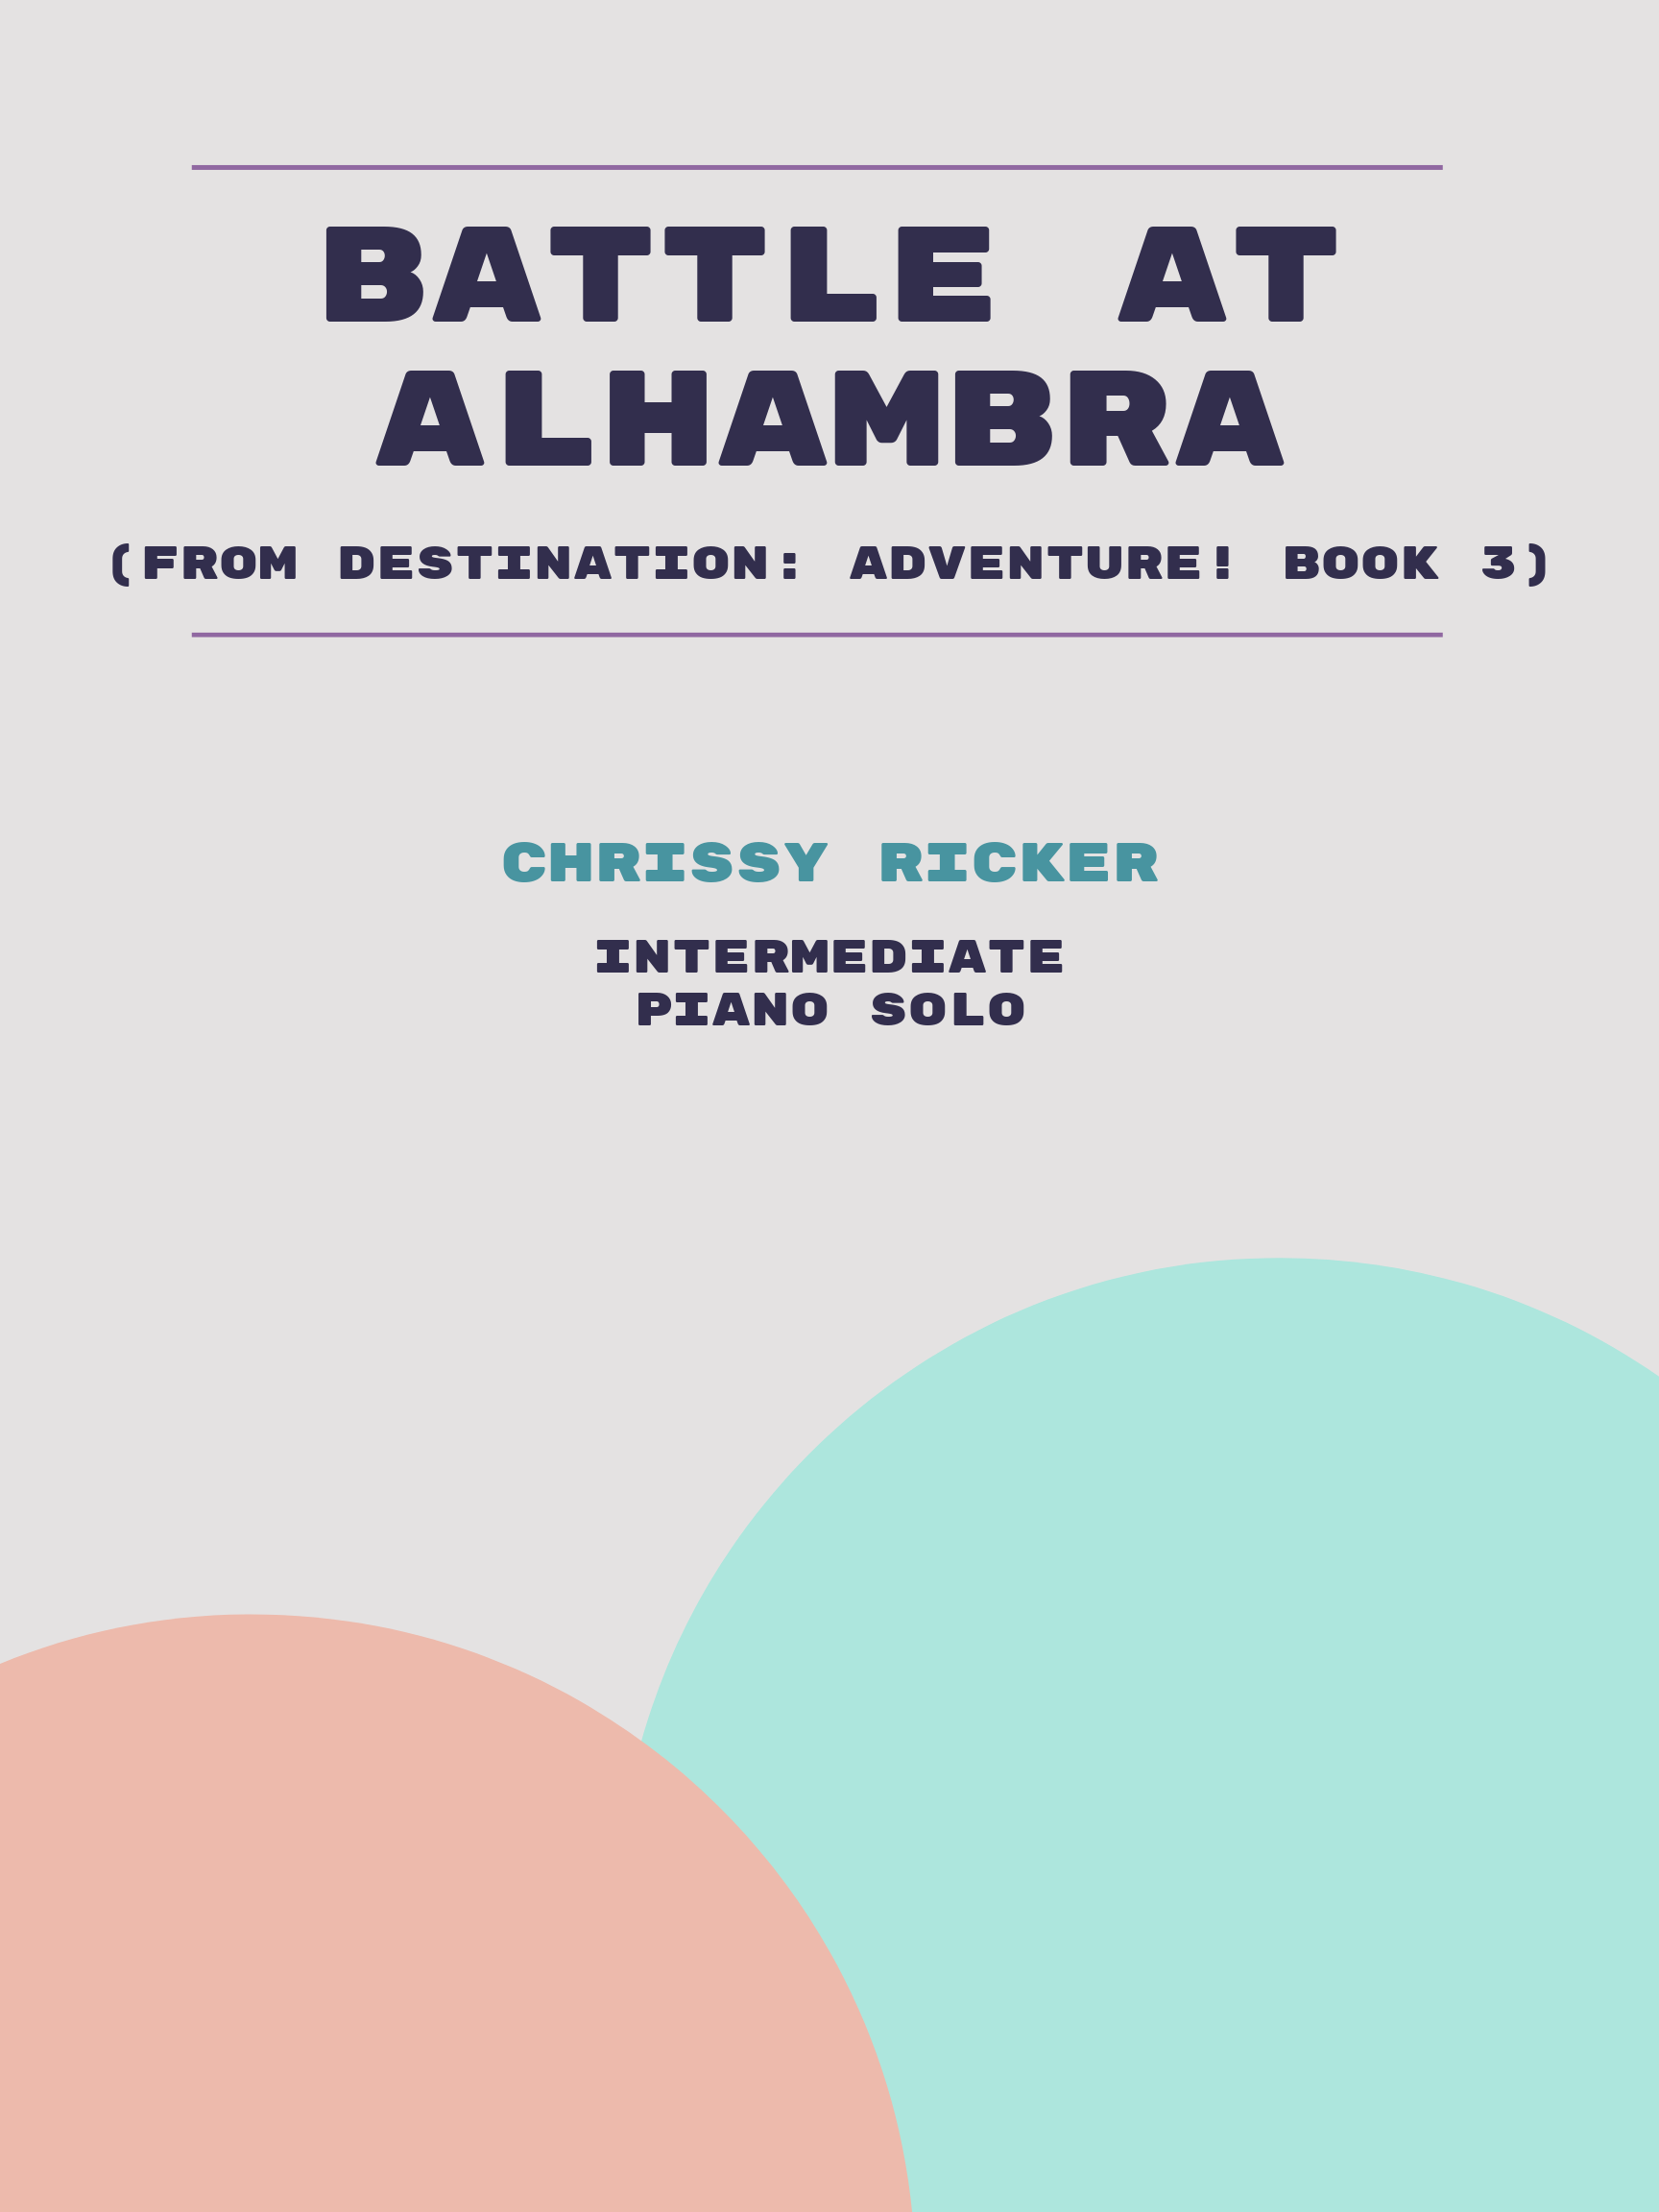 Battle at Alhambra by Chrissy Ricker